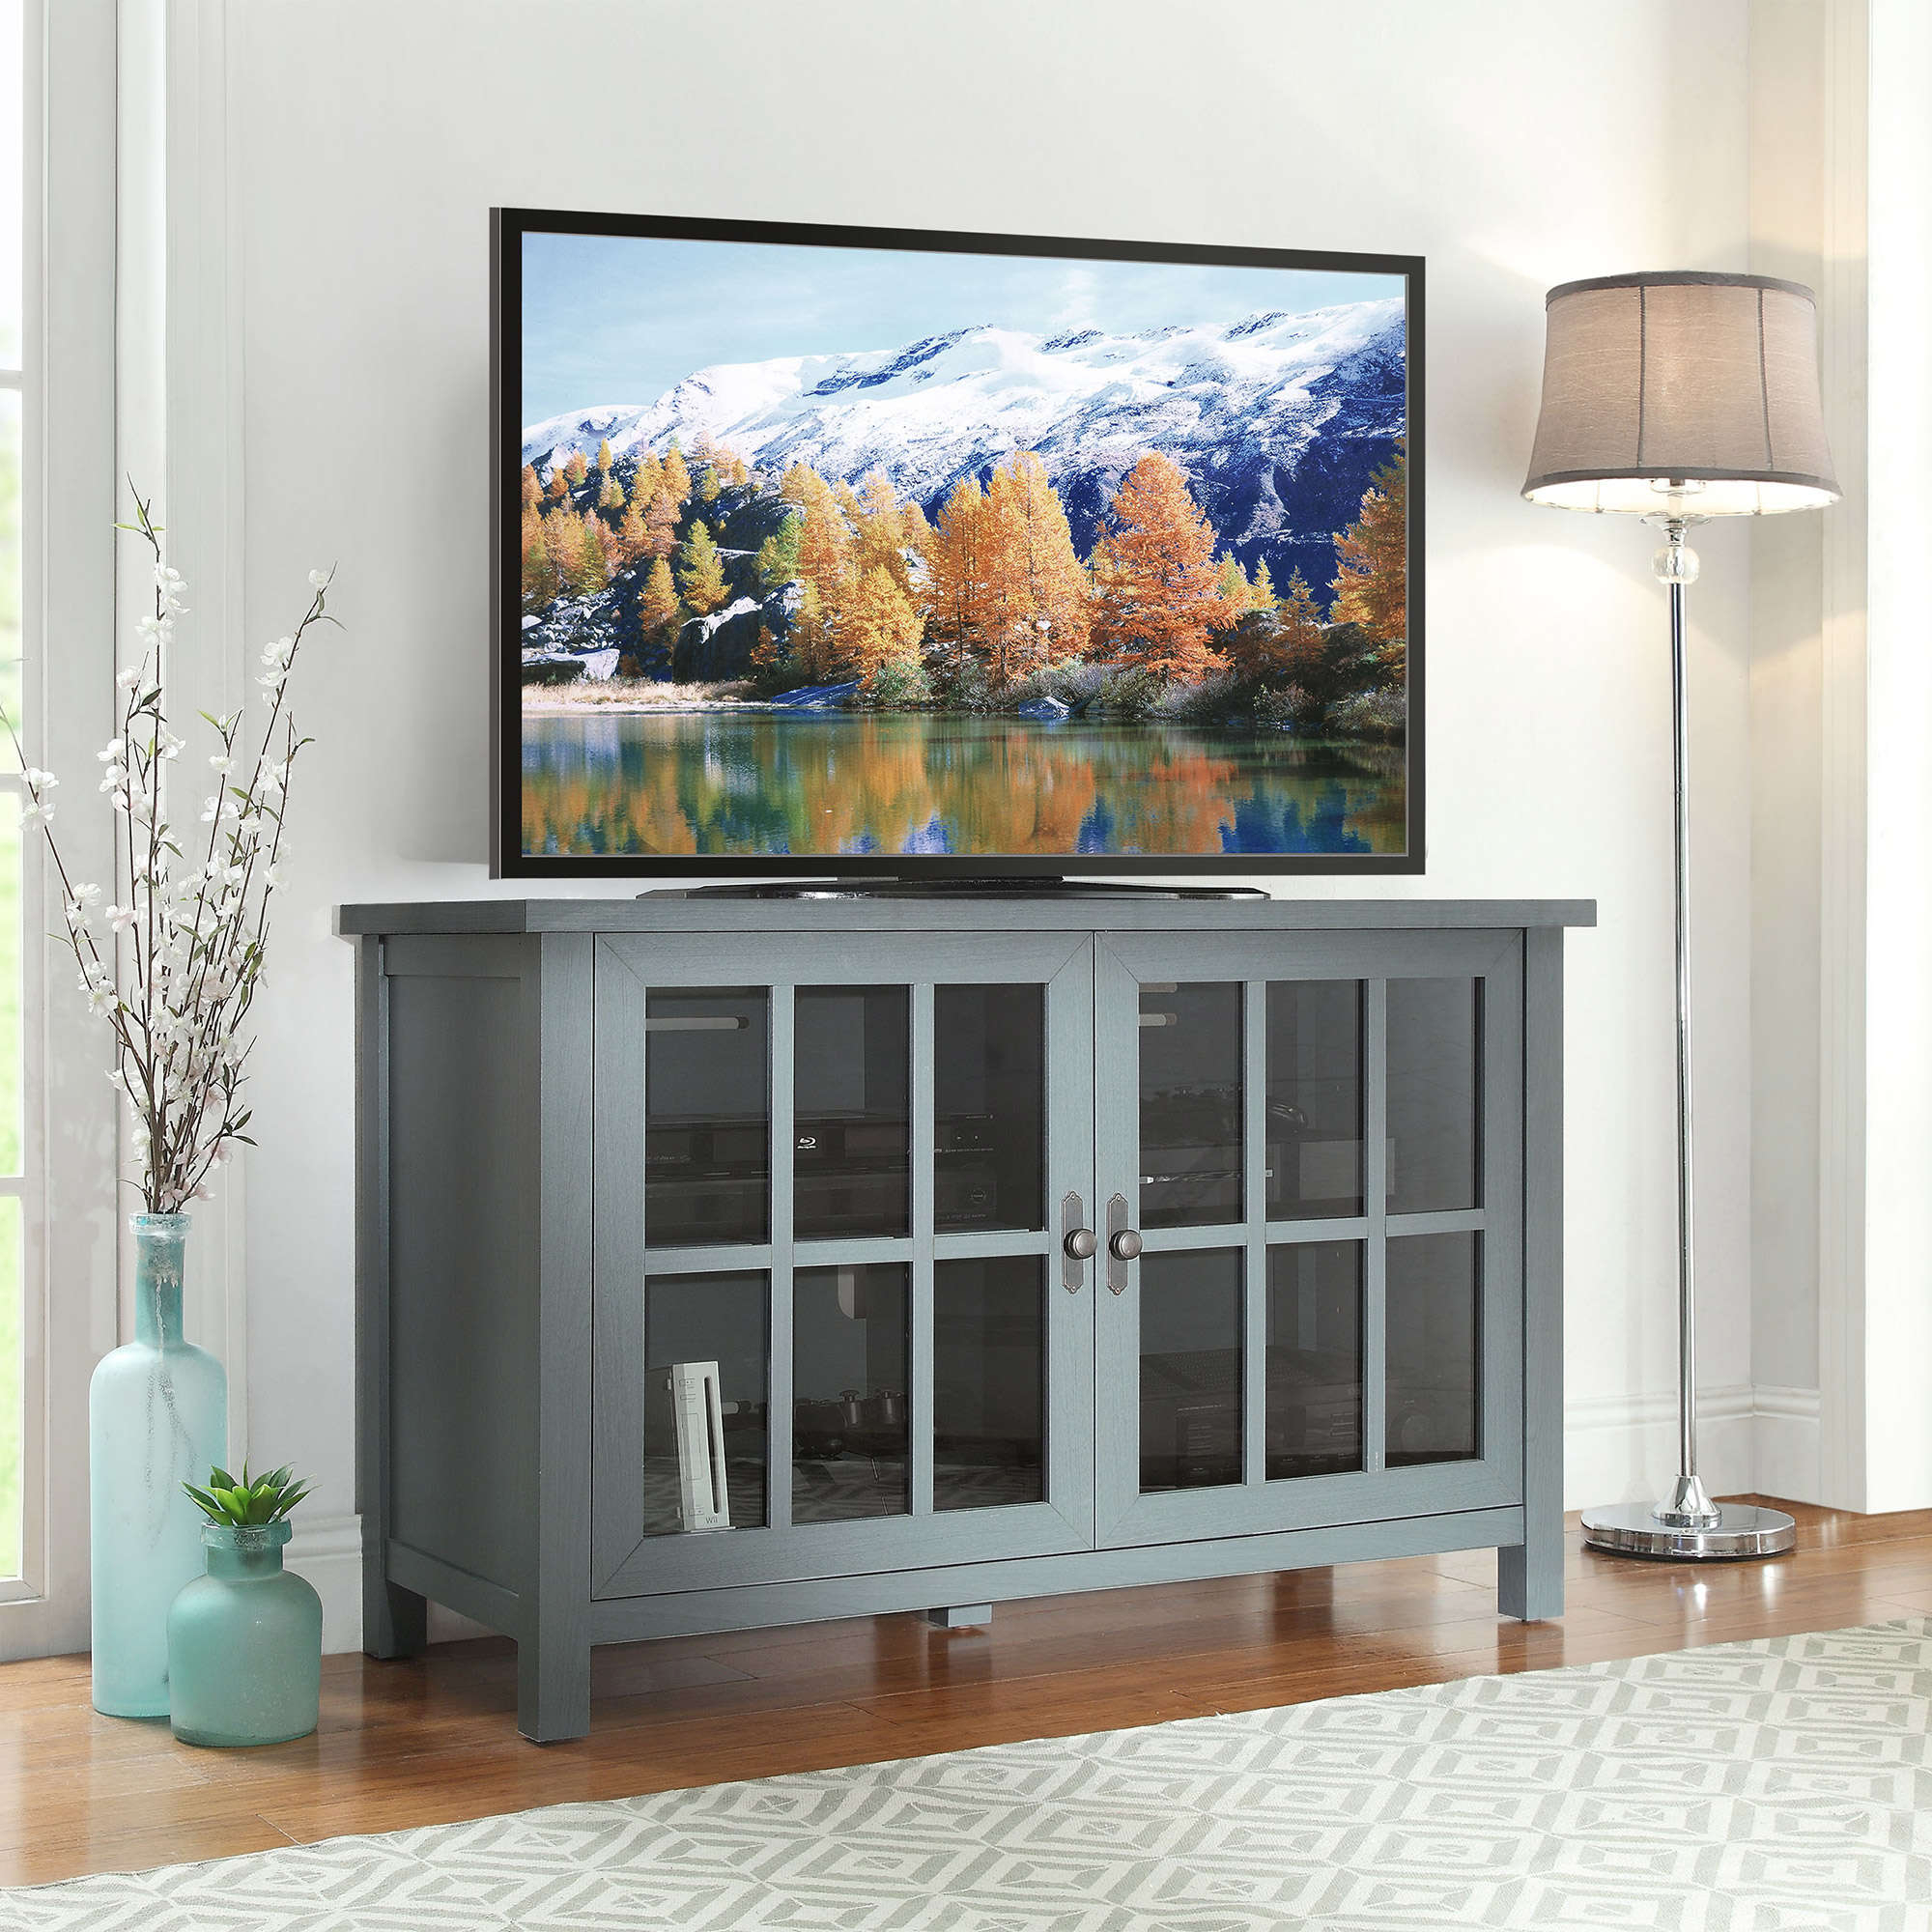 Better Homes And Gardens Oxford Square Tv Console For Tvs Up To 55 for Oxford 60 Inch Tv Stands (Image 11 of 30)